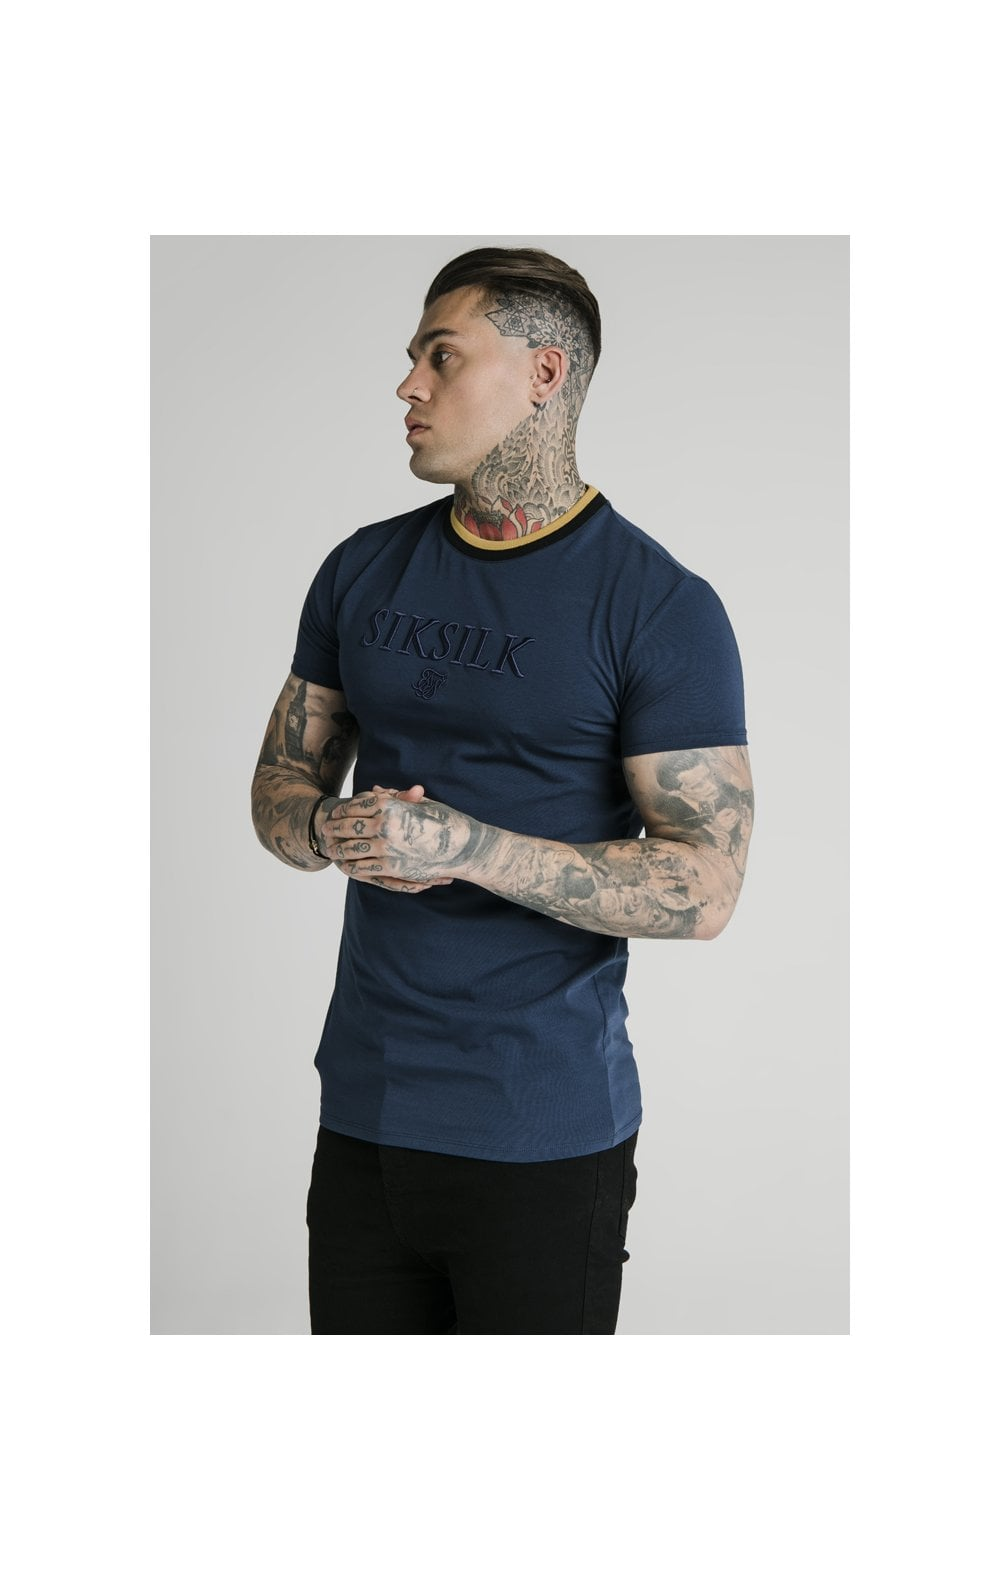 SikSilk Straight Hem Gym Tee – Navy, Gold & Black